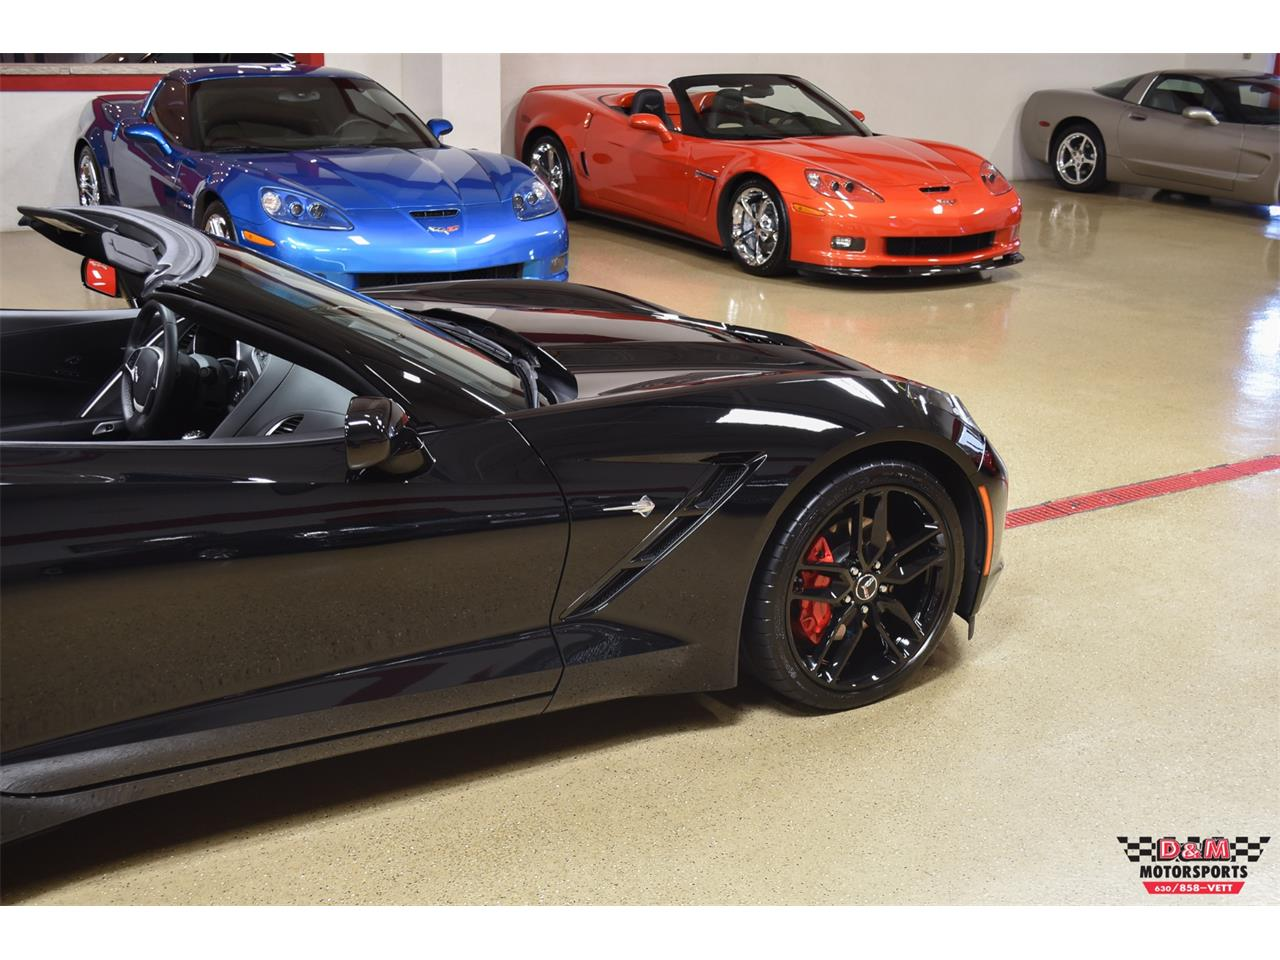 Large Picture of 2015 Chevrolet Corvette located in Illinois Offered by D & M Motorsports - PZ21